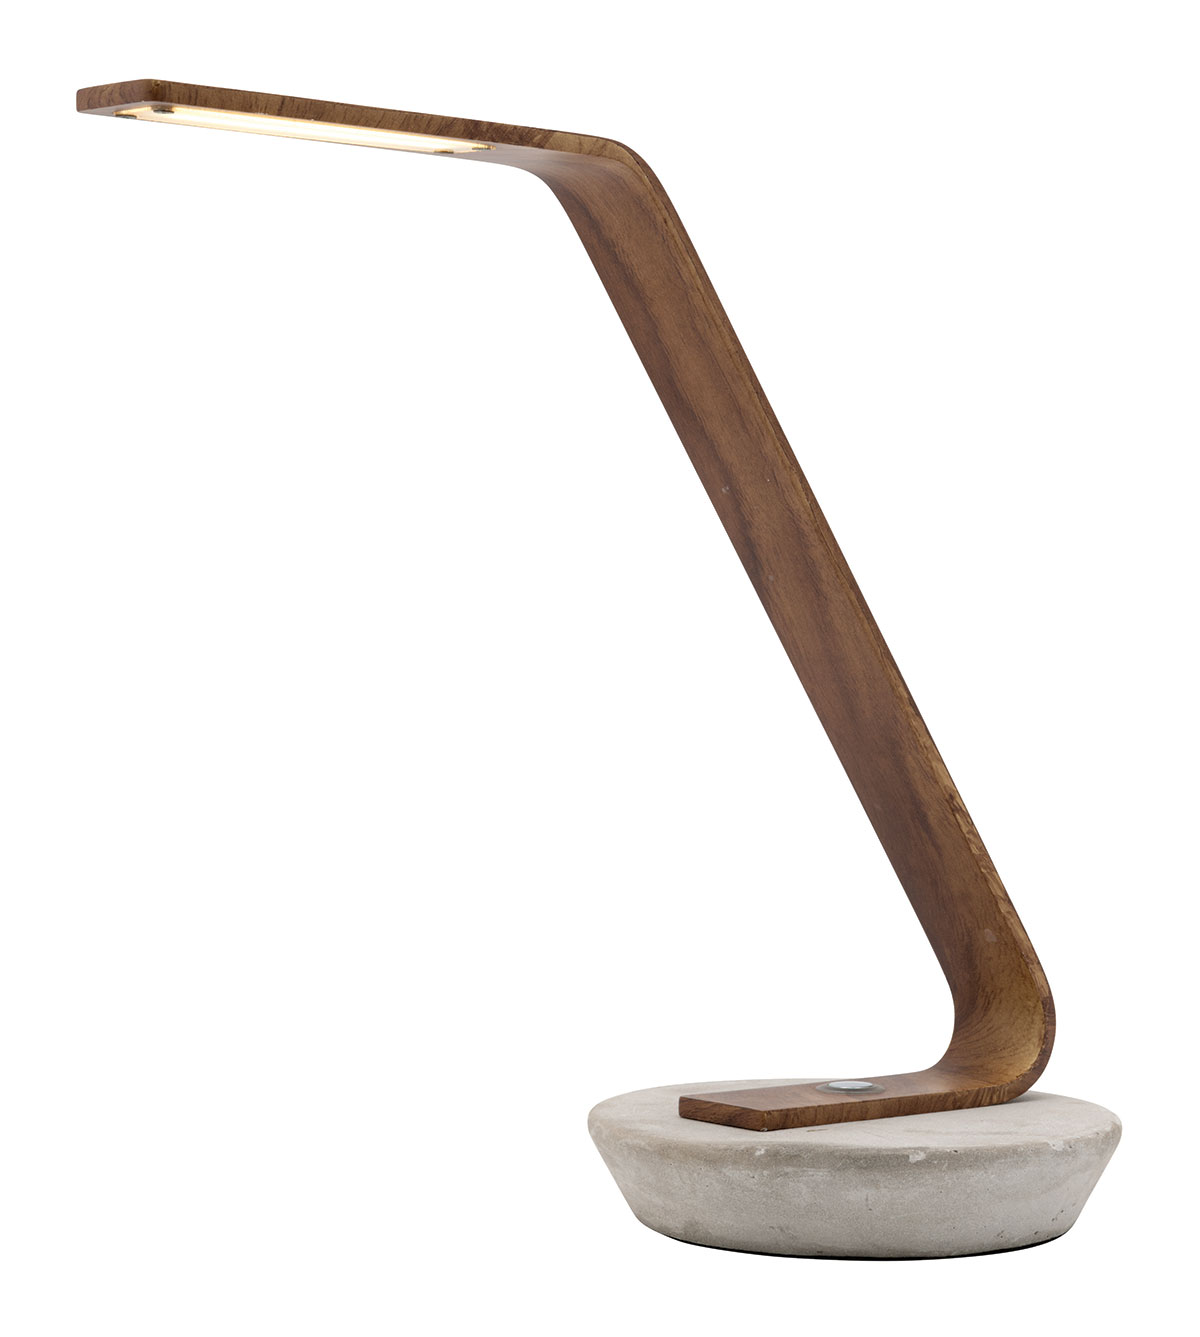 harrison led touch desk lamp timber w concrete online